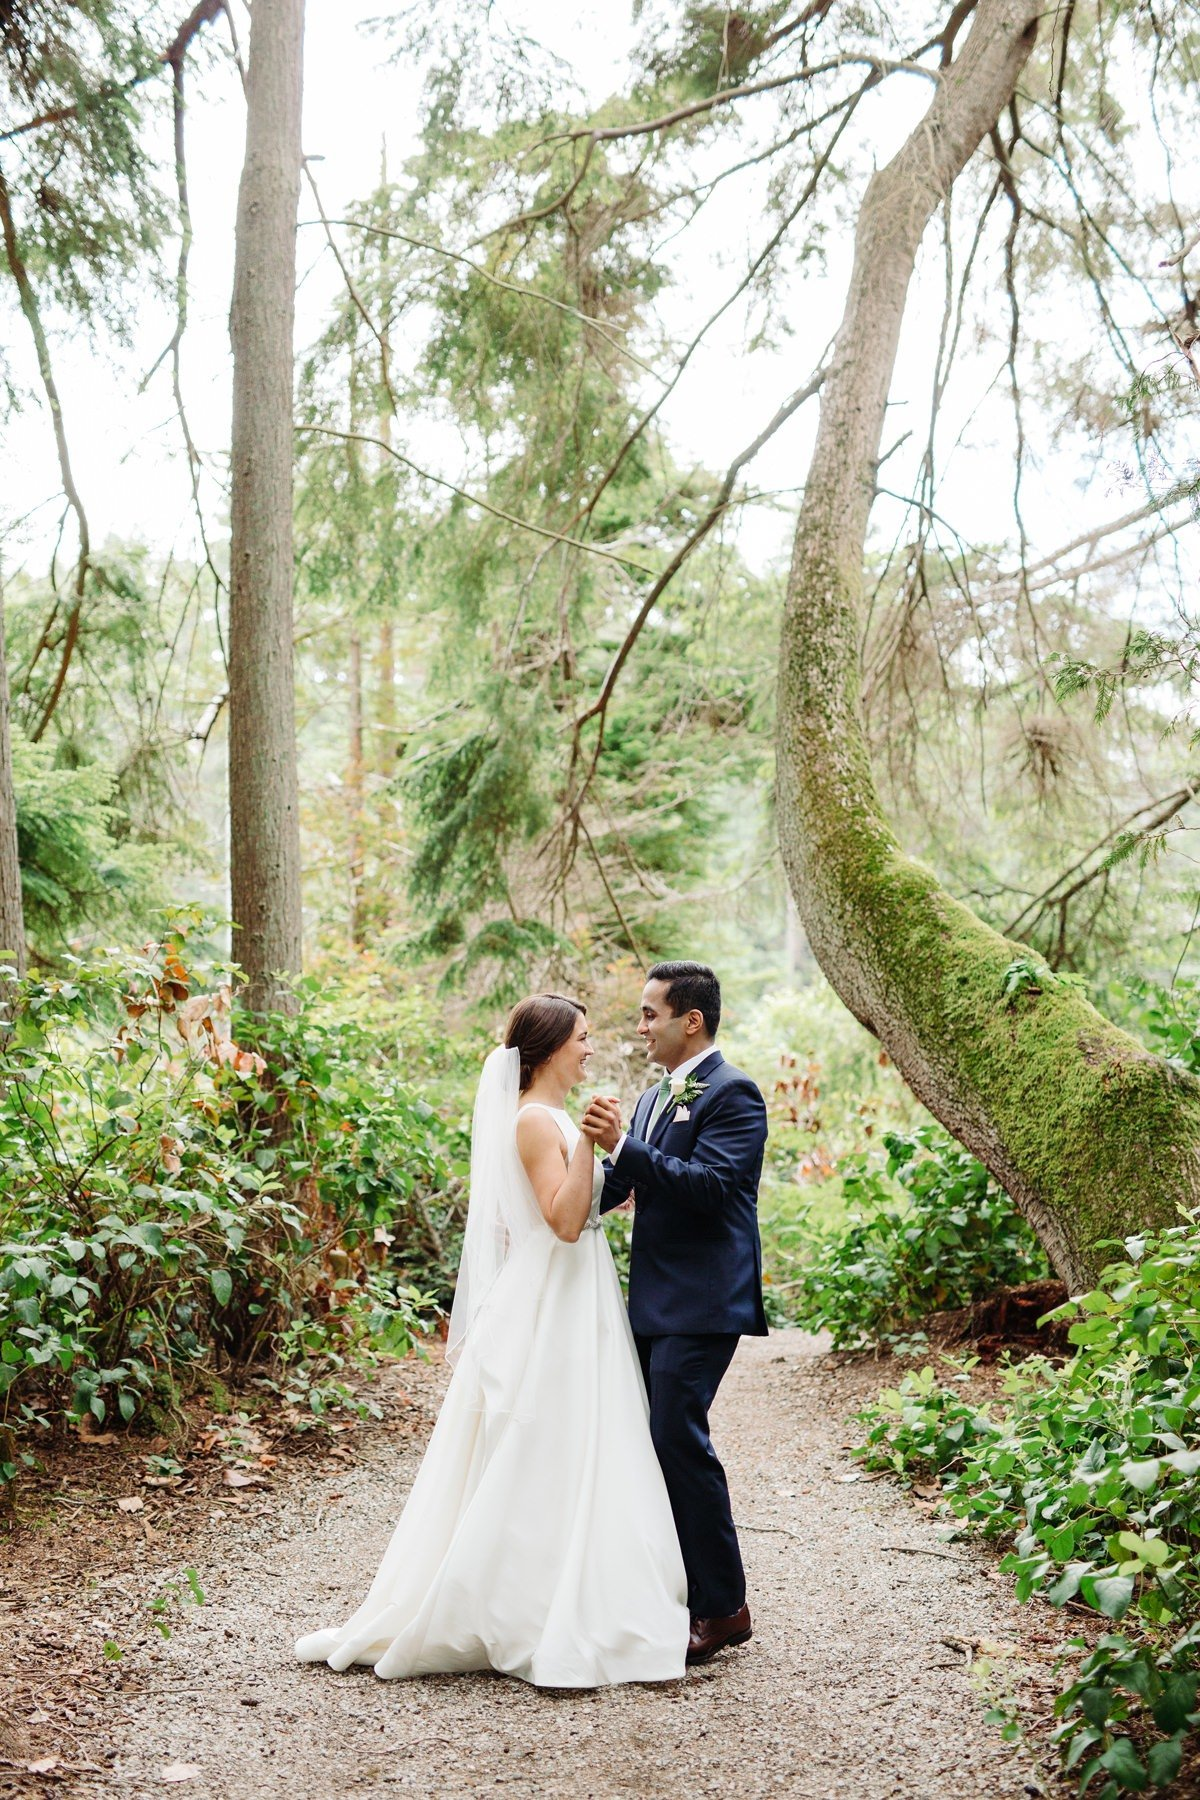 islandwood-bainbridge-island-wedding-photographer-seattle-cameron-zegers-0189